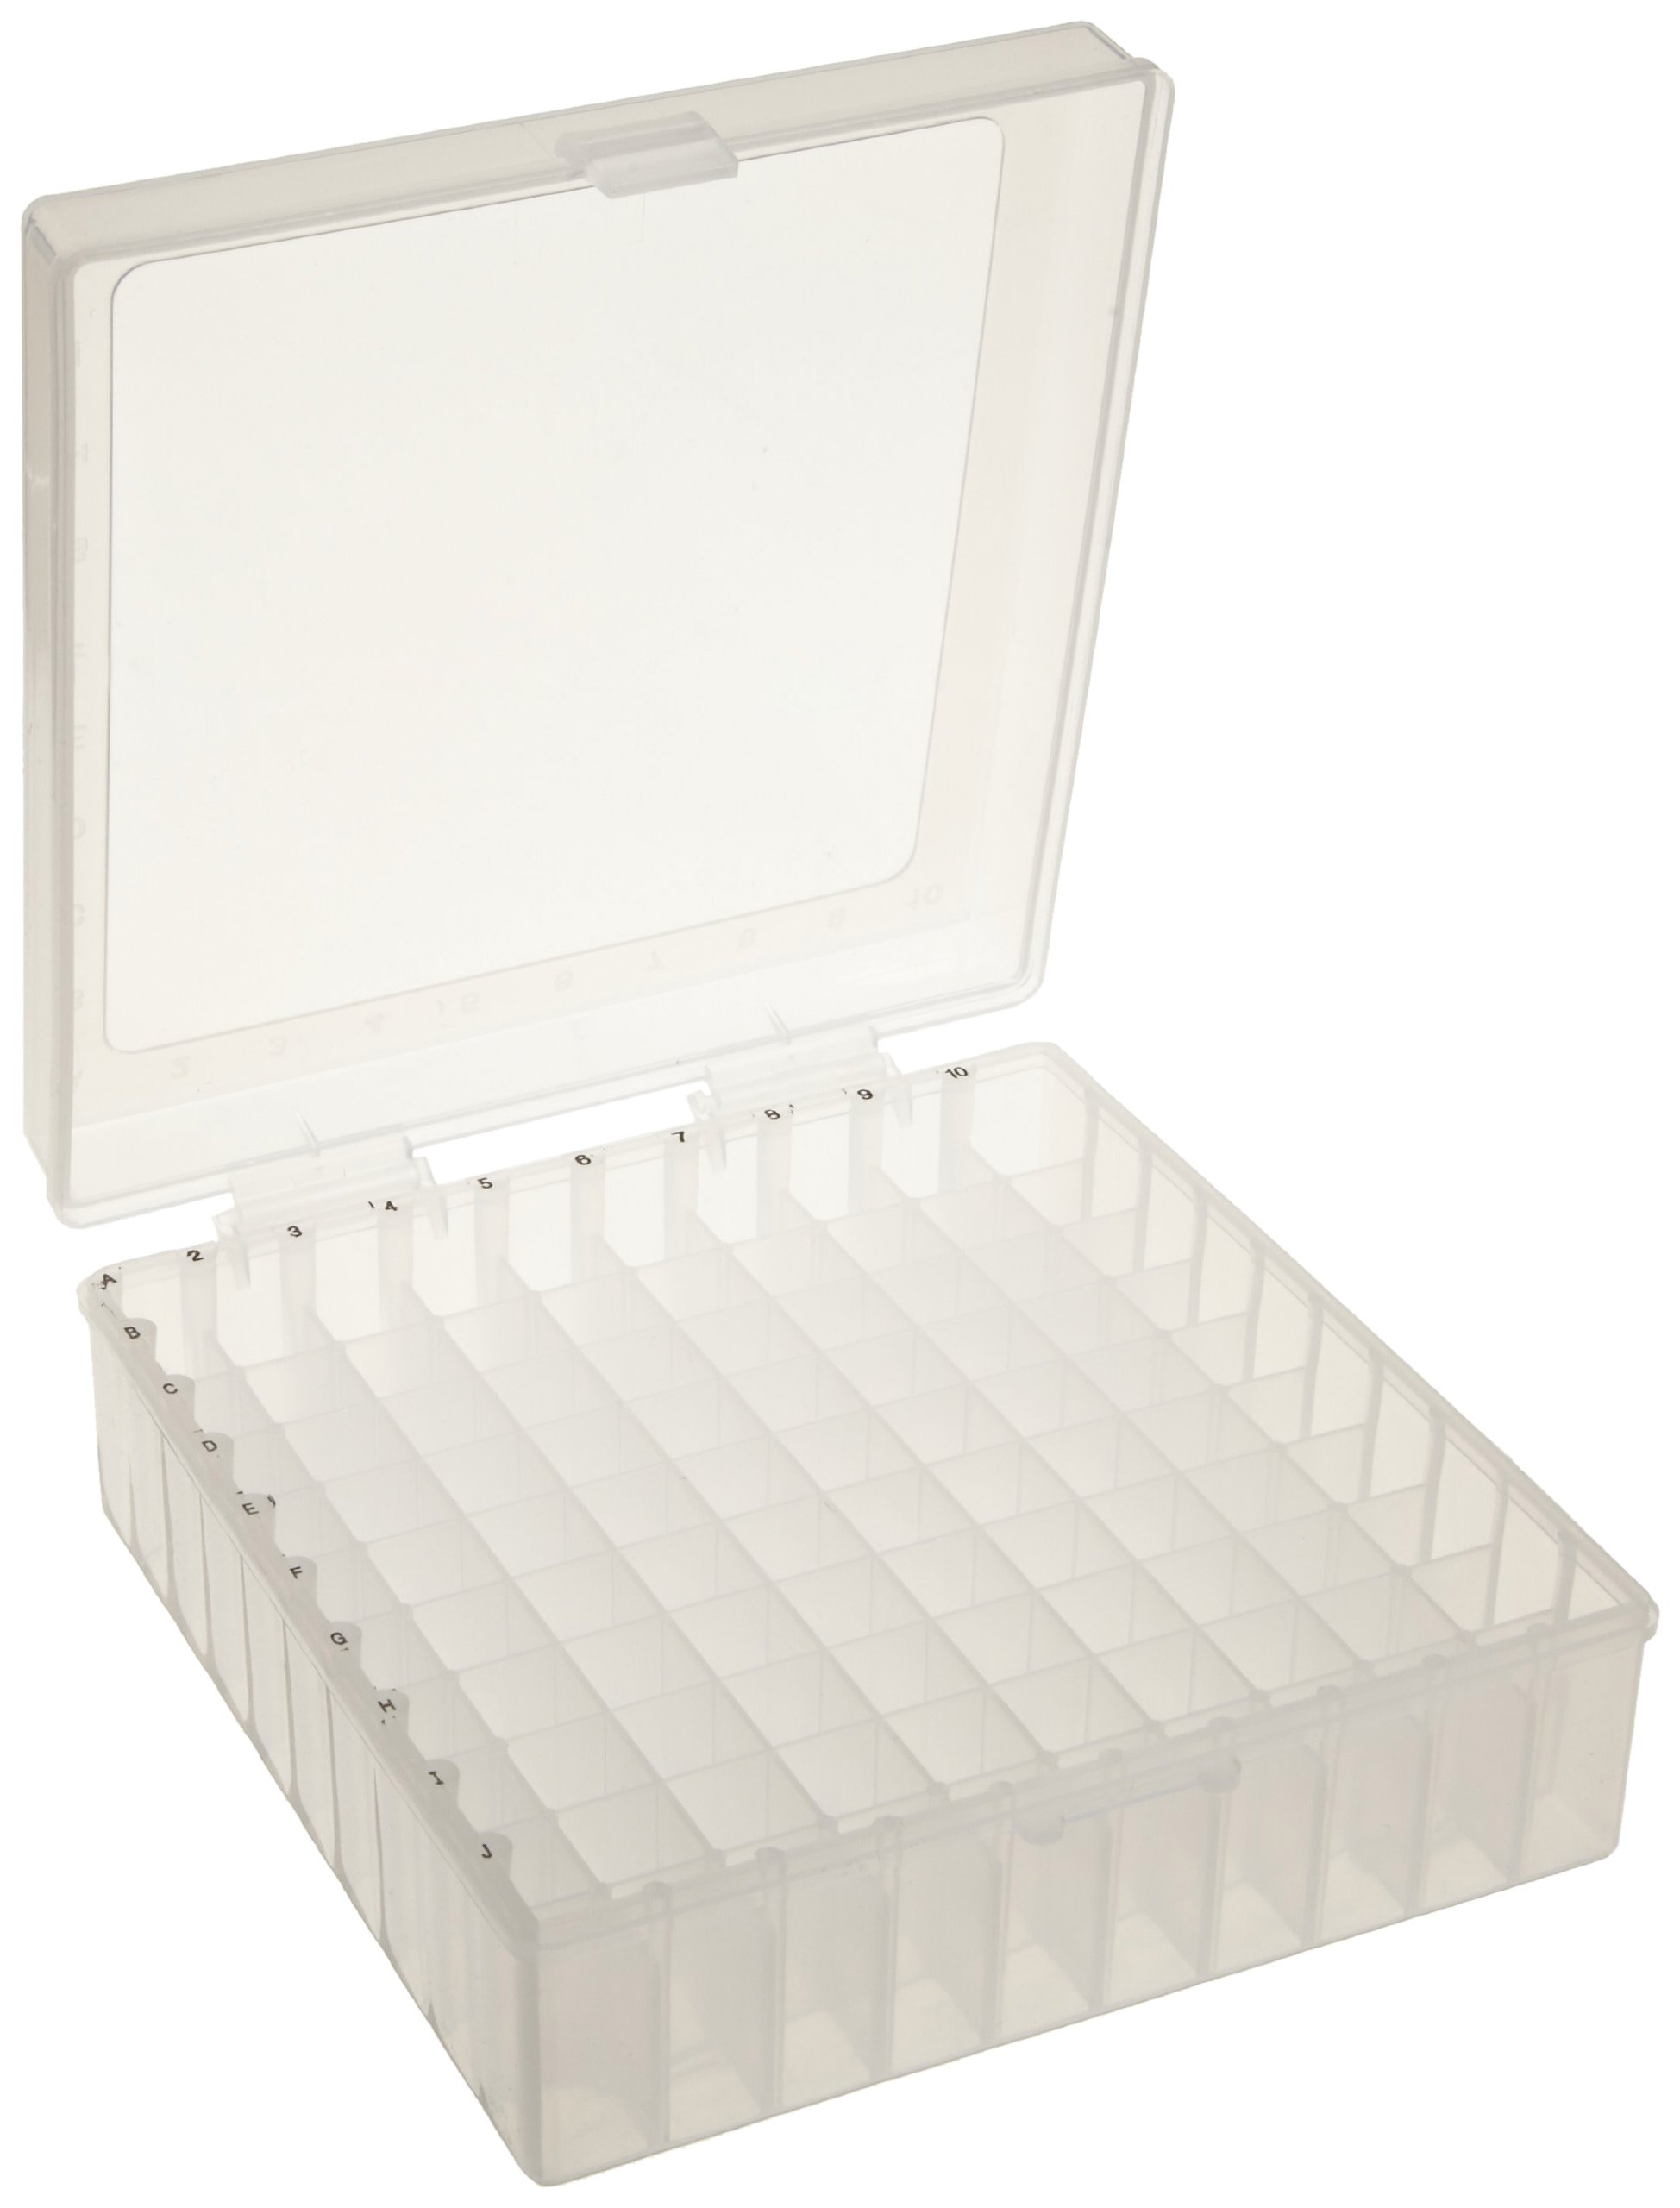 Bel-Art F18851-0011 100-Place Plastic Freezer Storage Boxes; 6 x 5.7 x 2.2 in. H, Natural (Pack of 5)